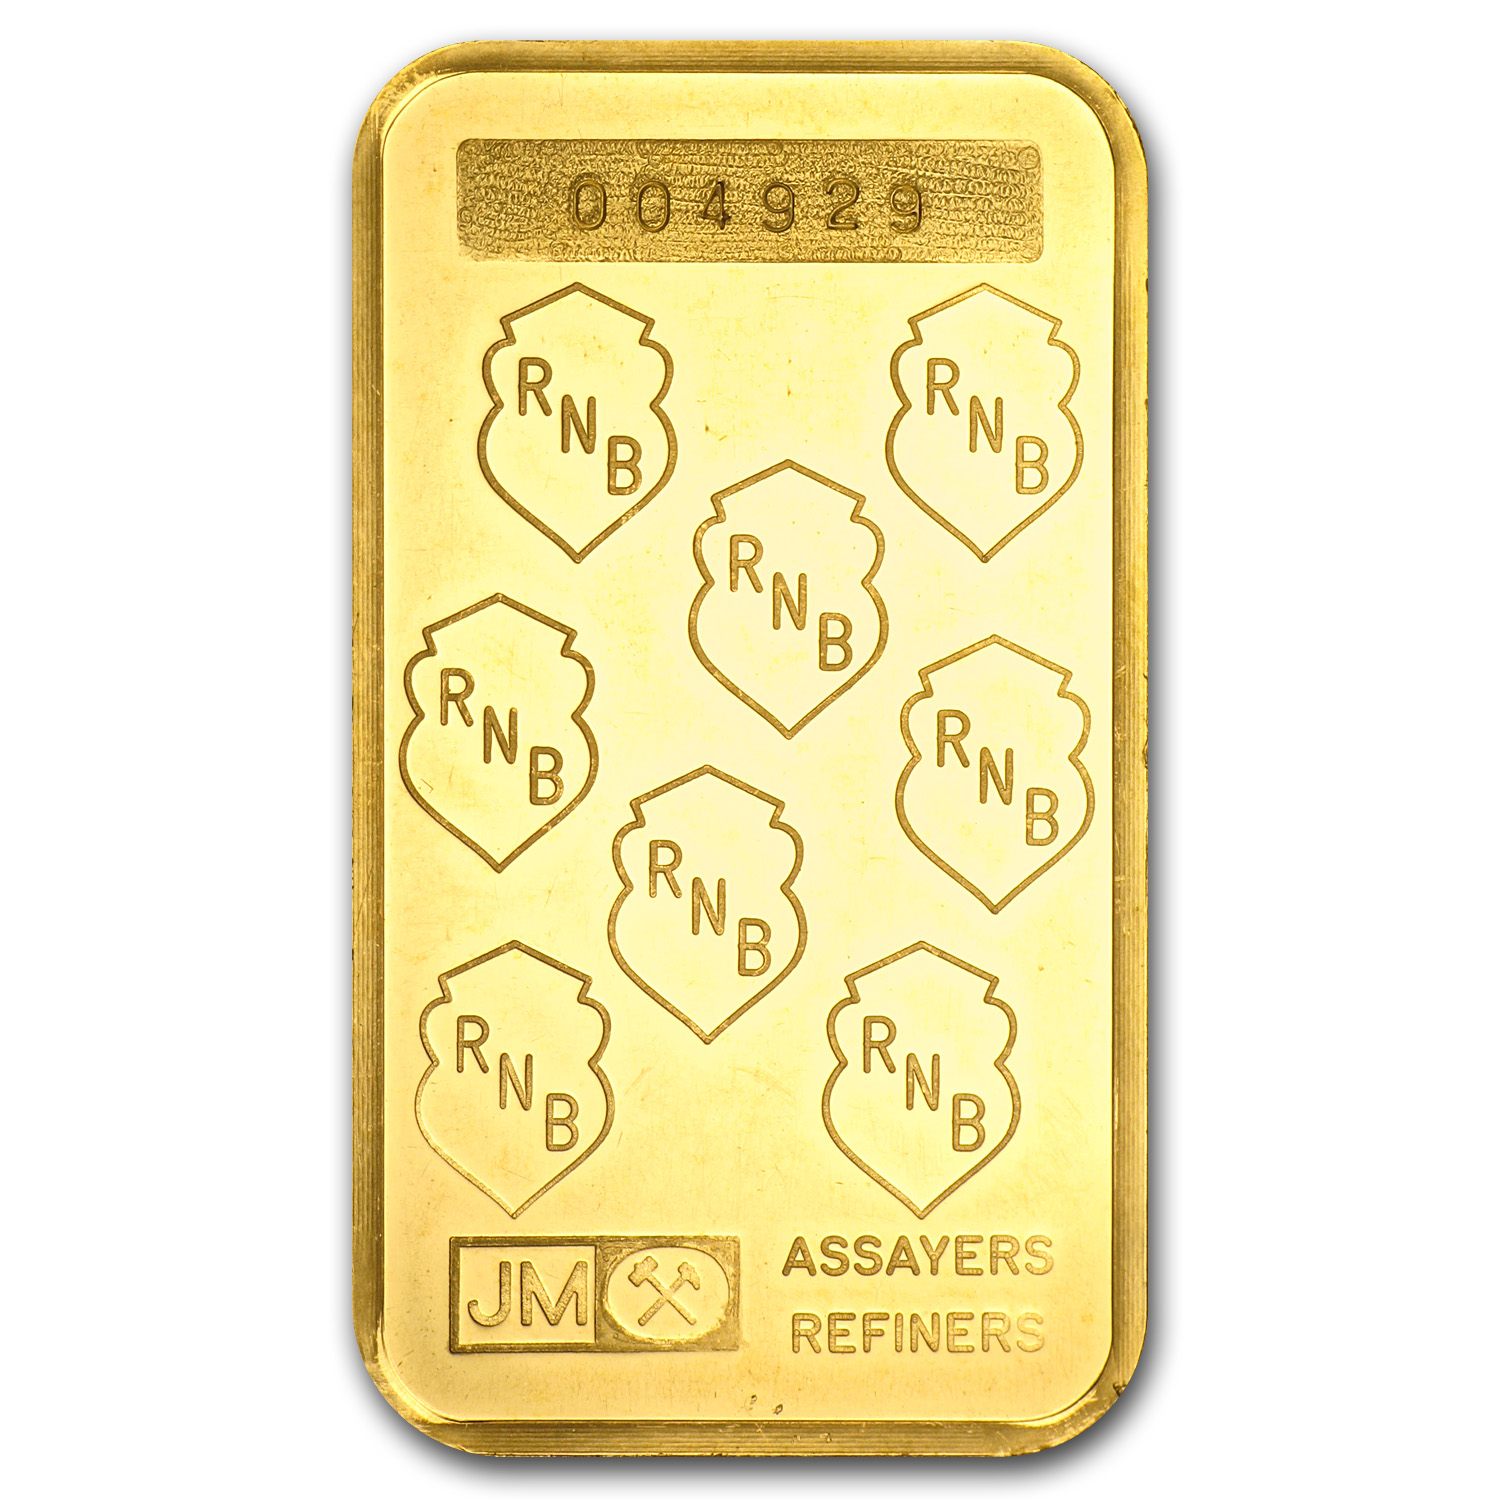 1 oz Gold Bars - Johnson Matthey (RNB)